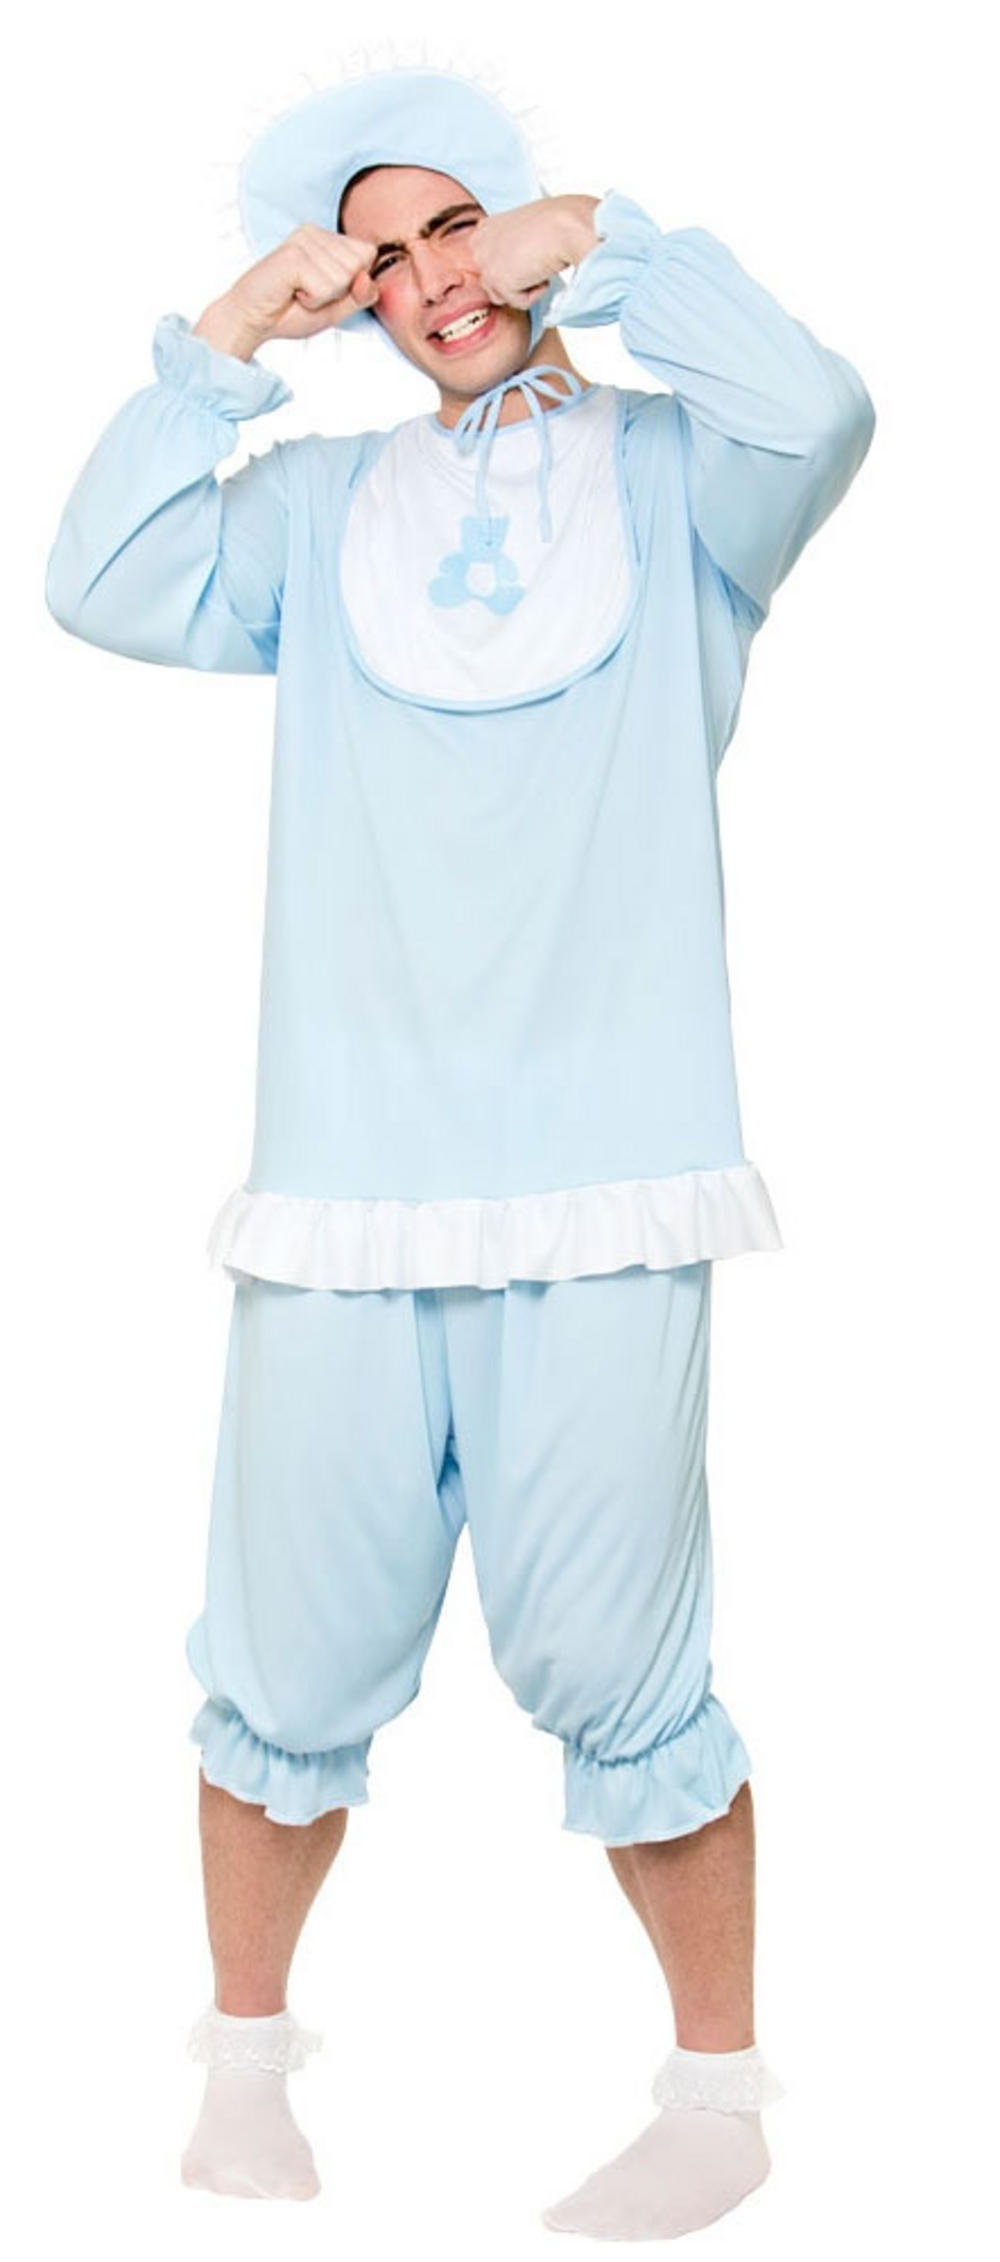 Big Cry Baby Costume